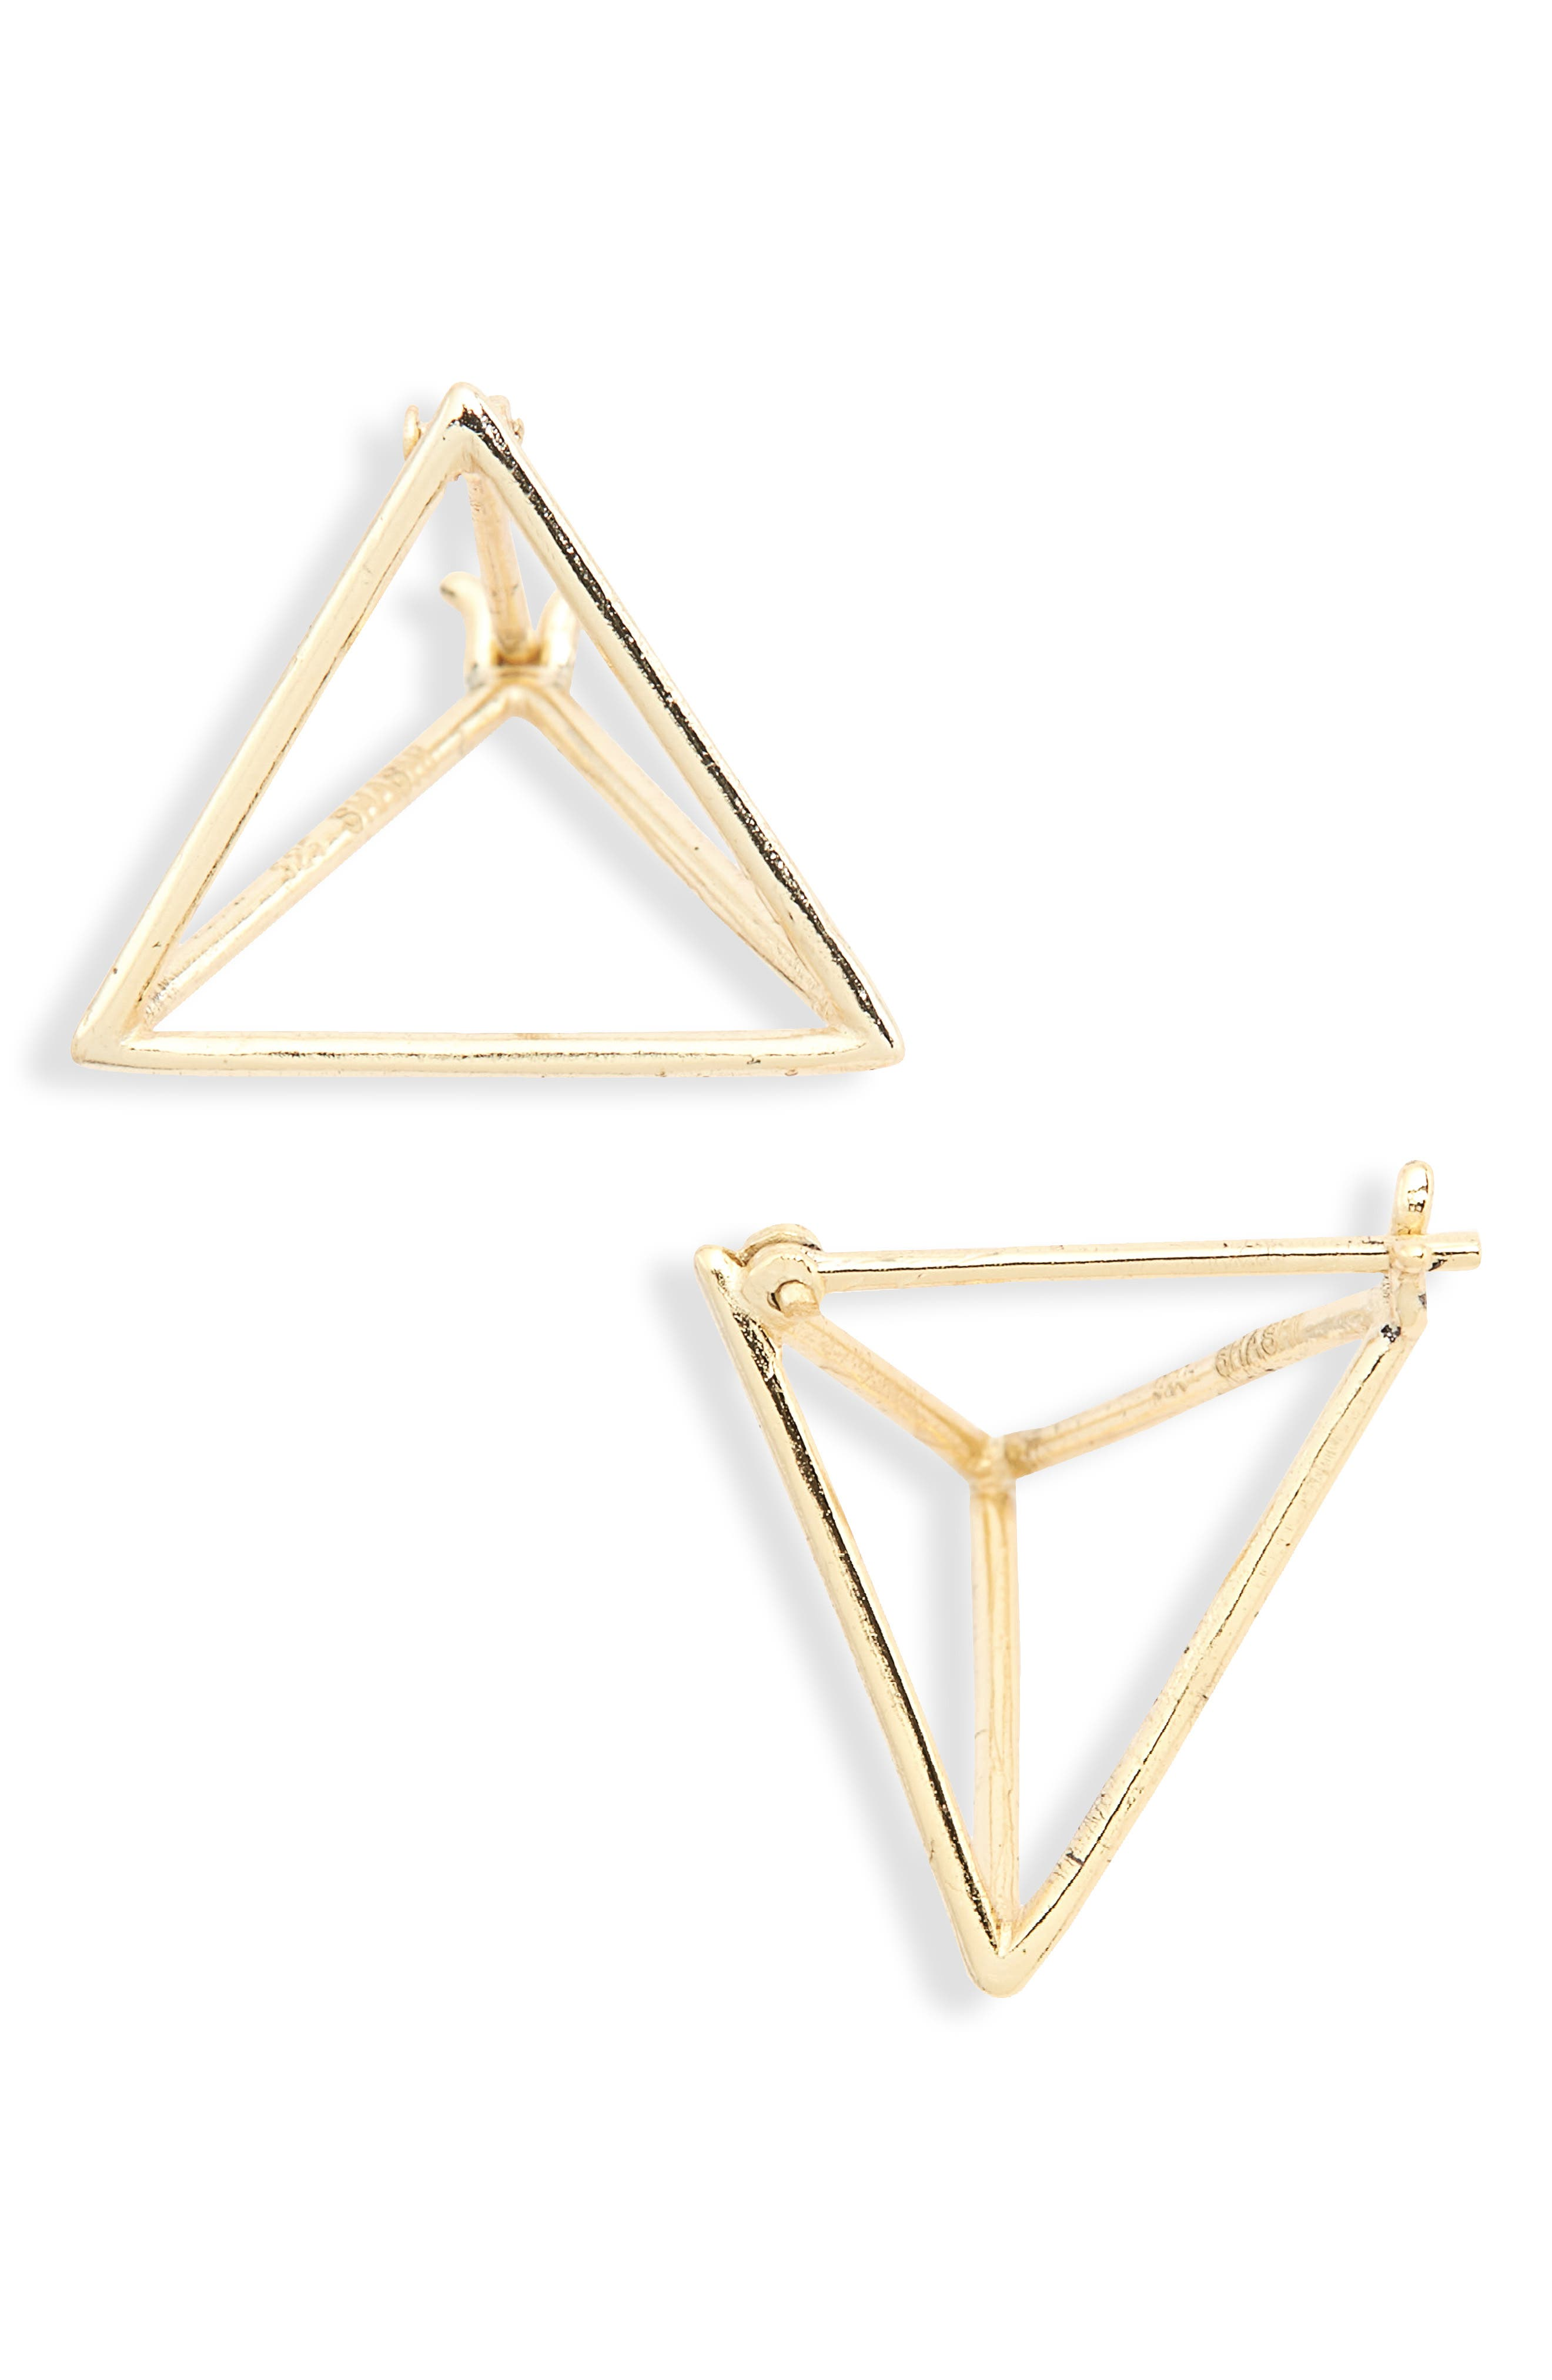 Briana Vermeil Stud Earrings,                             Main thumbnail 1, color,                             Yellow Gold